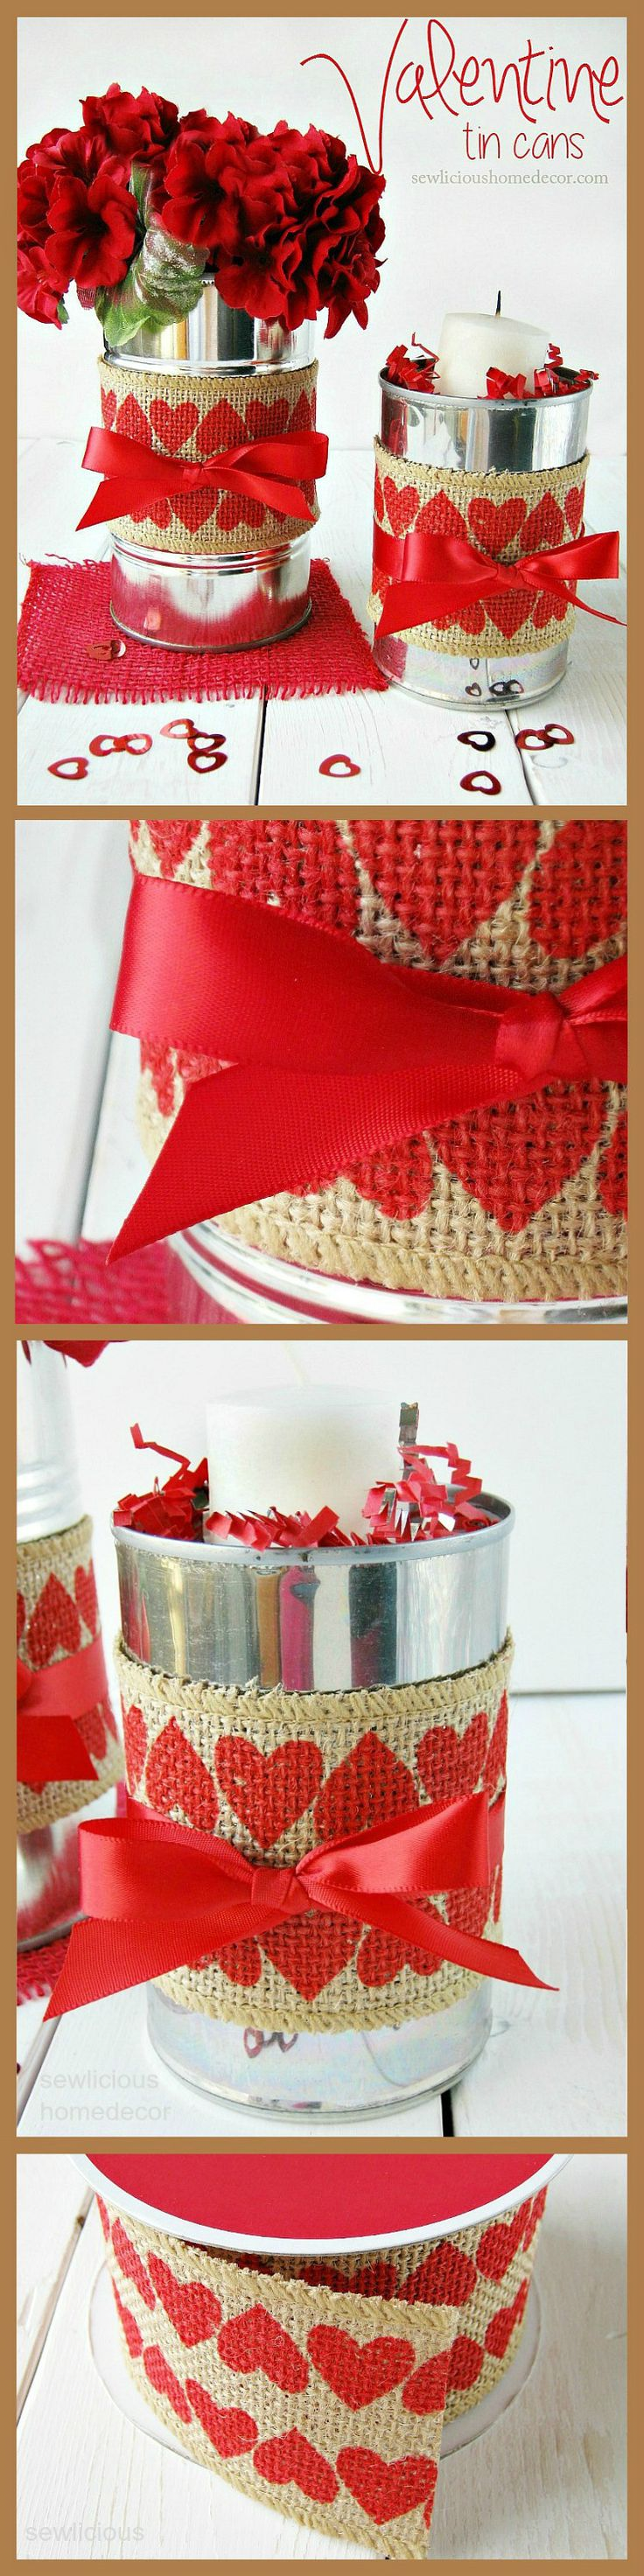 Valentine Tin Cans. Makes a beautiful table centerpiece or gift idea! Use burlap or scrap fabric to decorate the can. sewlicioushomedecor.com